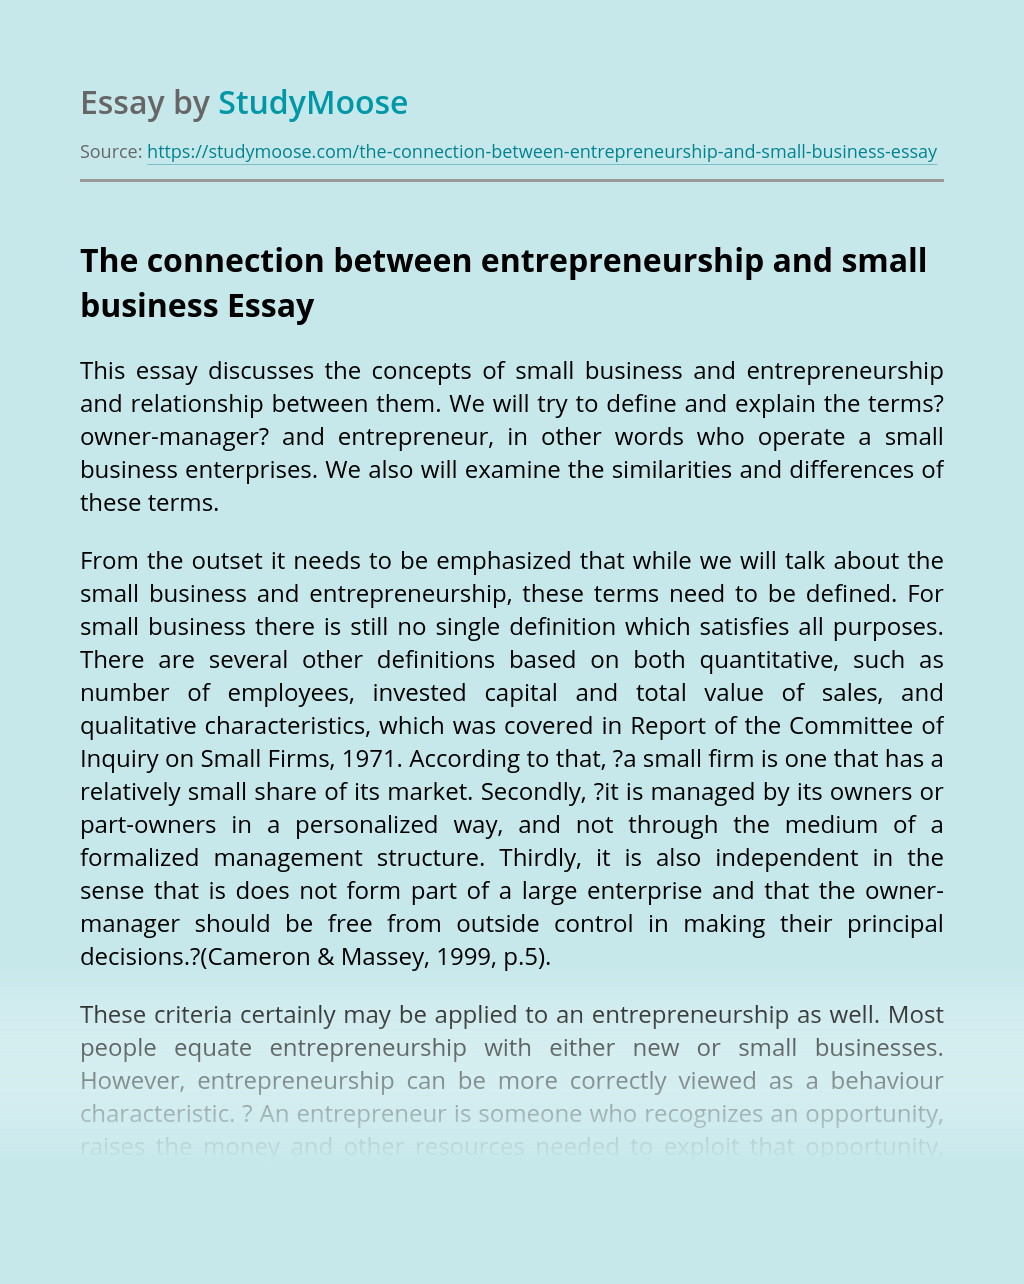 The connection between entrepreneurship and small business